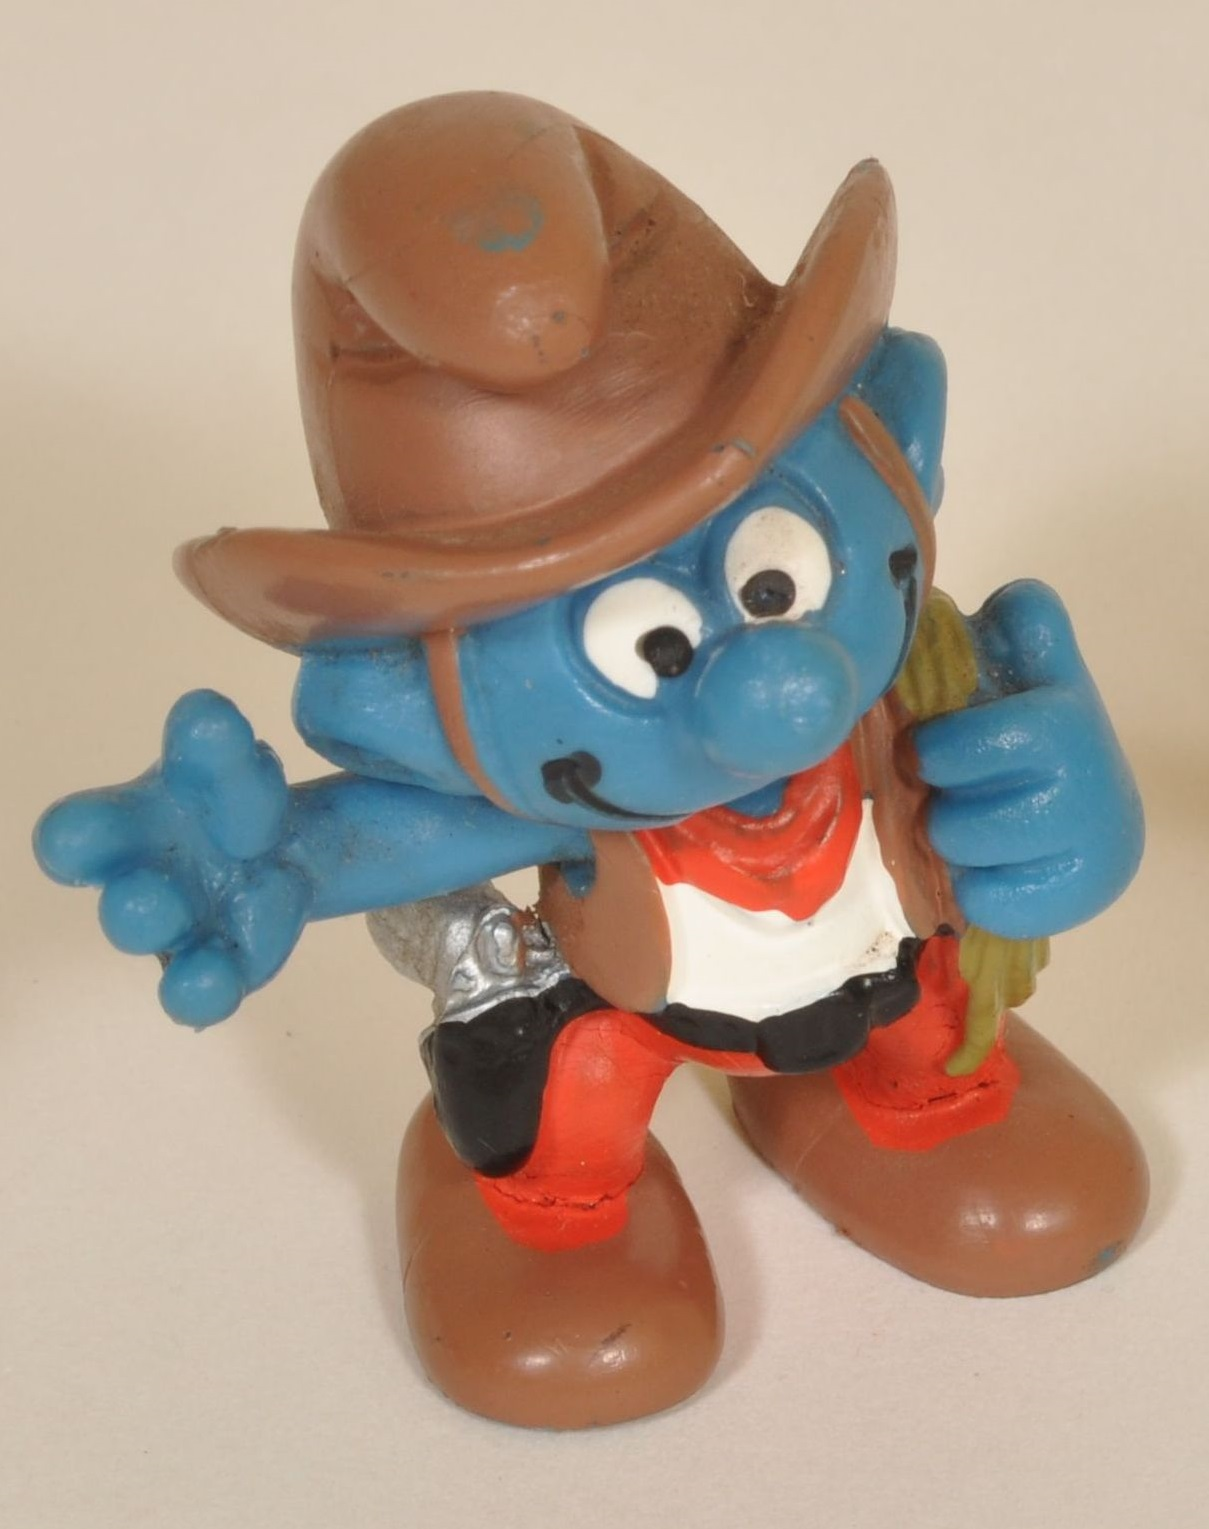 Smurf figurine in cowboy outfit. The figure has a human form with blue skin, googly eyes and a big grin. He is wearing a brown cowboy hat, boots and vest and red scarf and pants. He is holding a rope in one hand and has a gun in a holster on his hip.